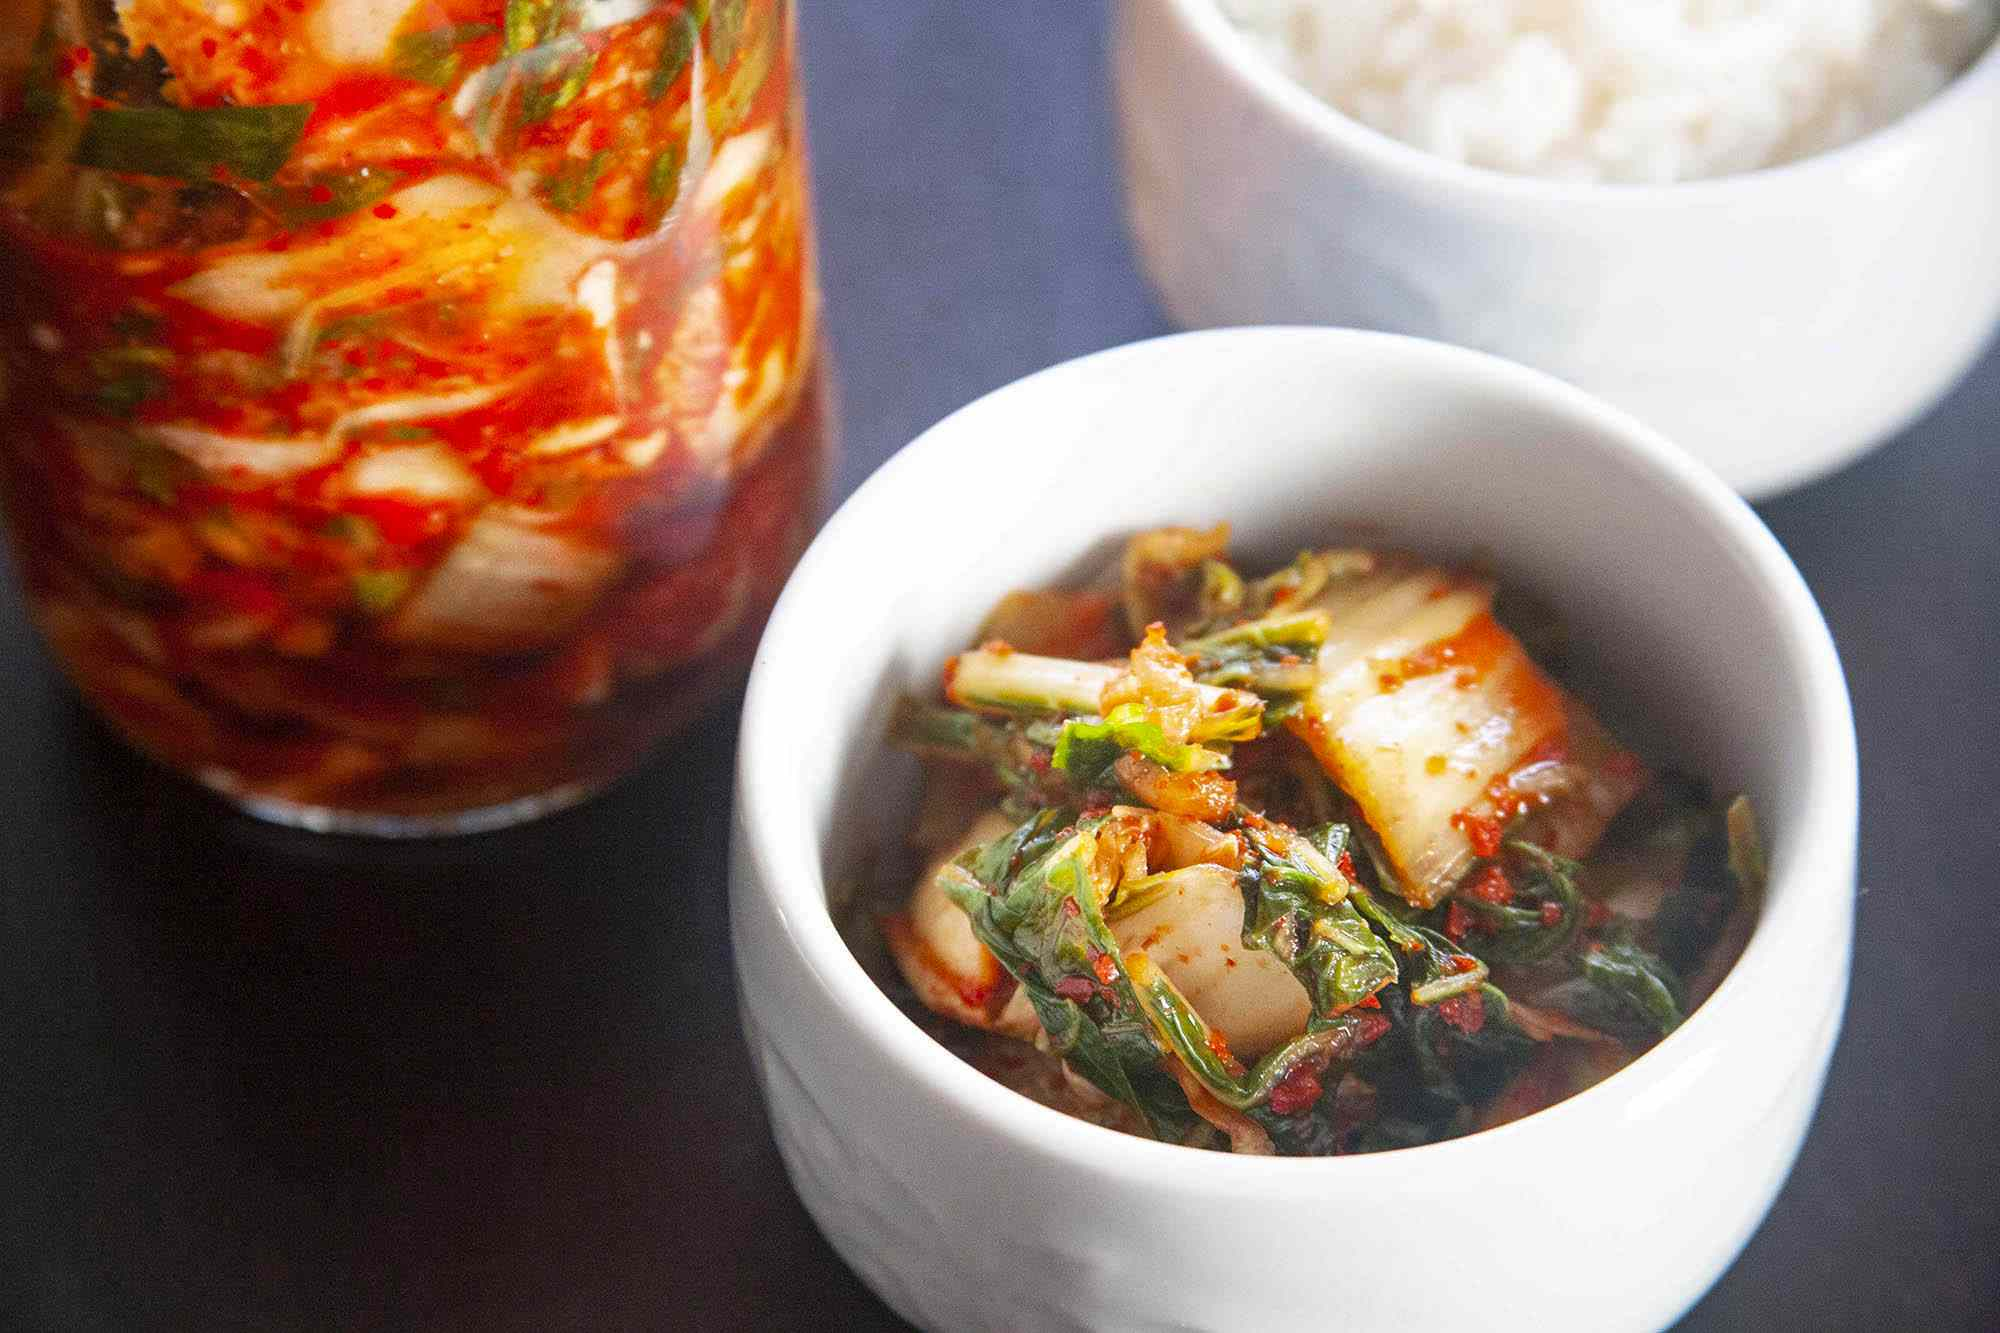 A bowl with easy homemade kimchi is in front of the jar of it and white rice is behind it.